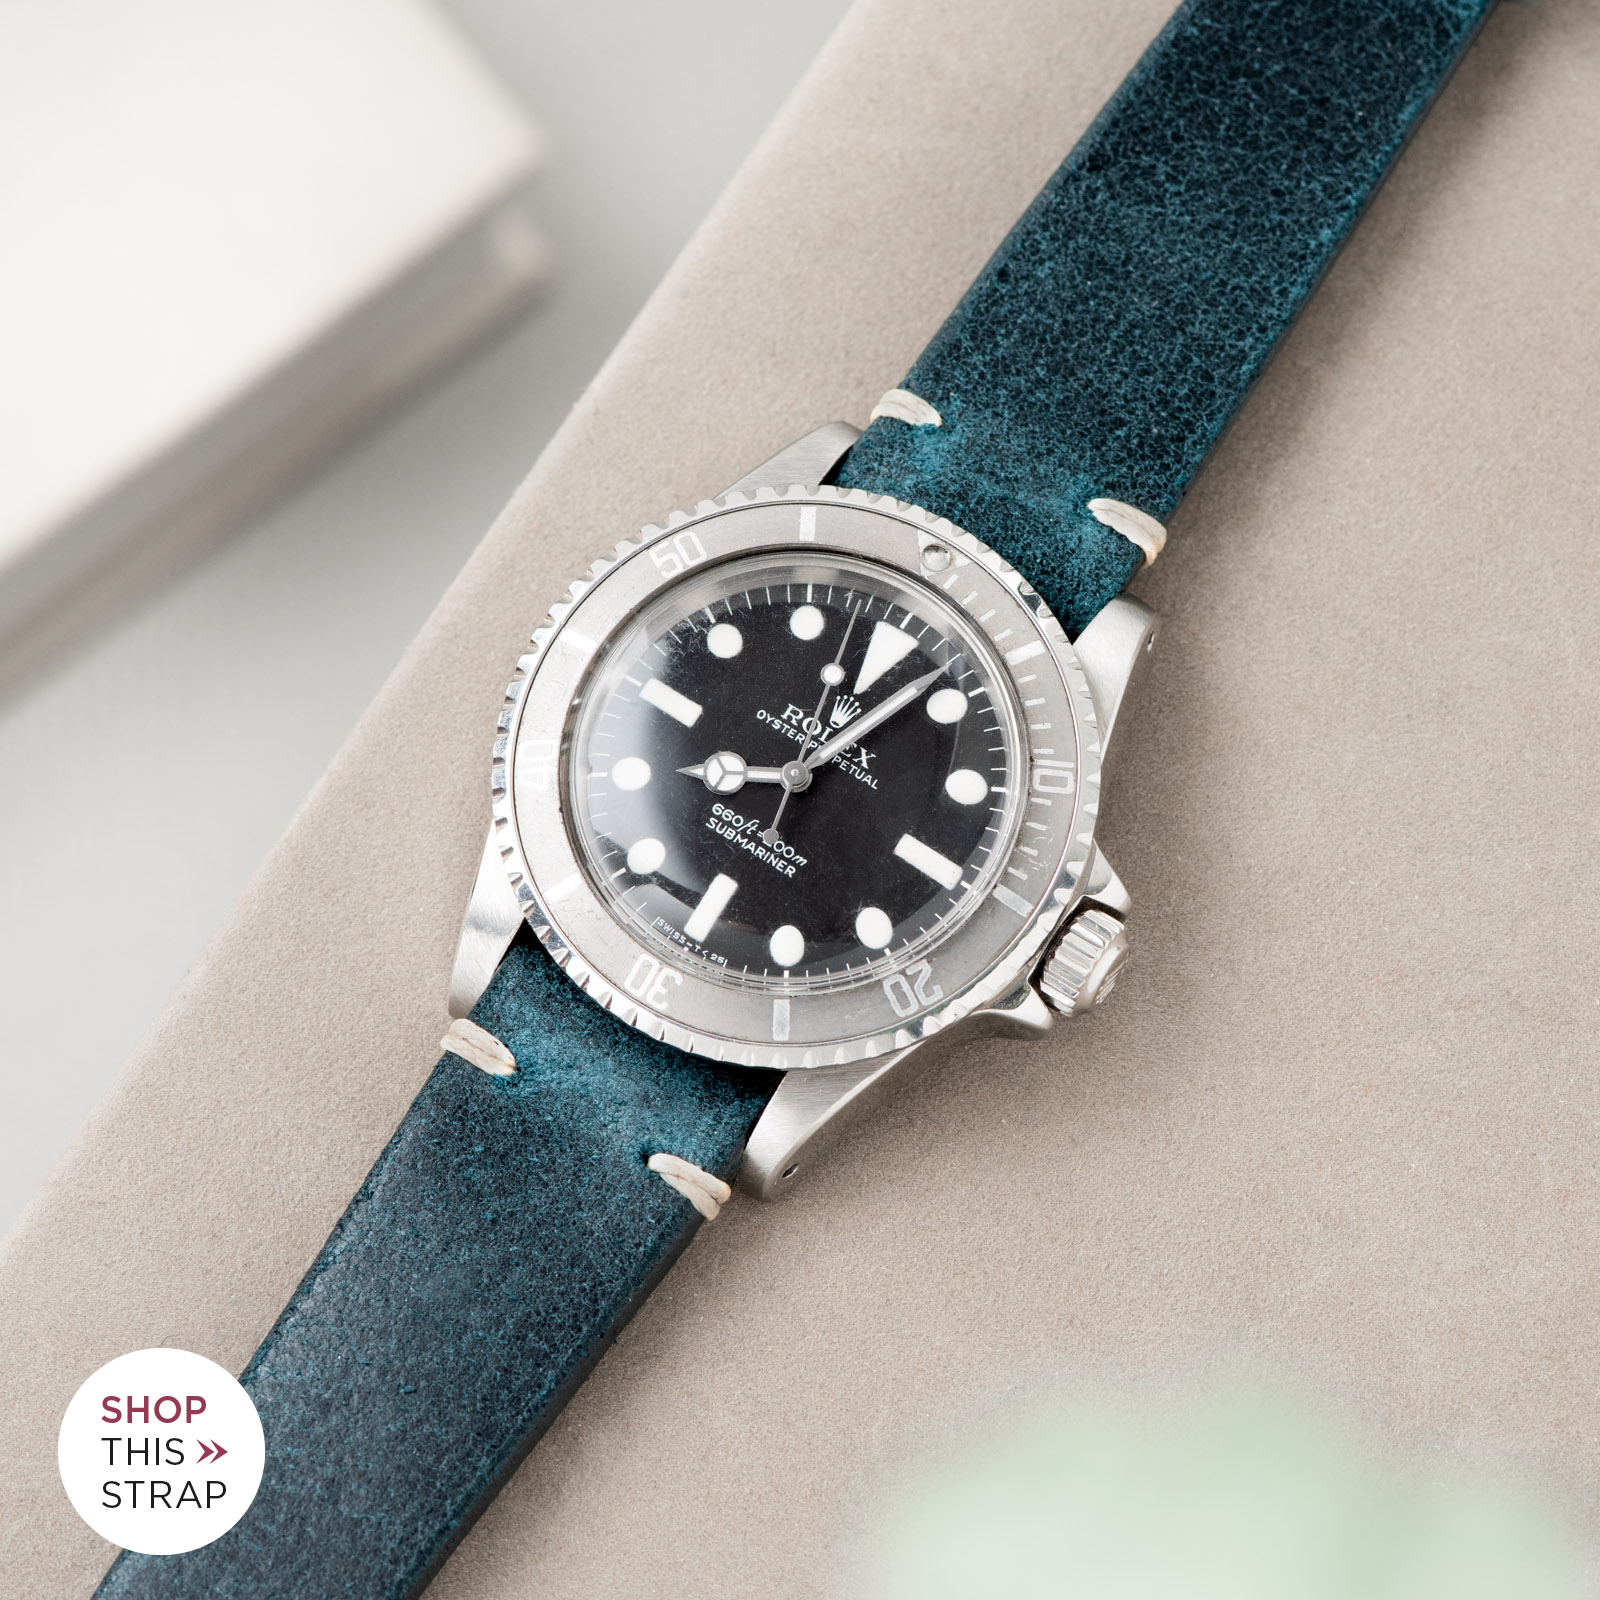 Bulang and Sons_Strap Guide_Rolex Submariner 5513_Crackle Copper Green Leather Watch Strap